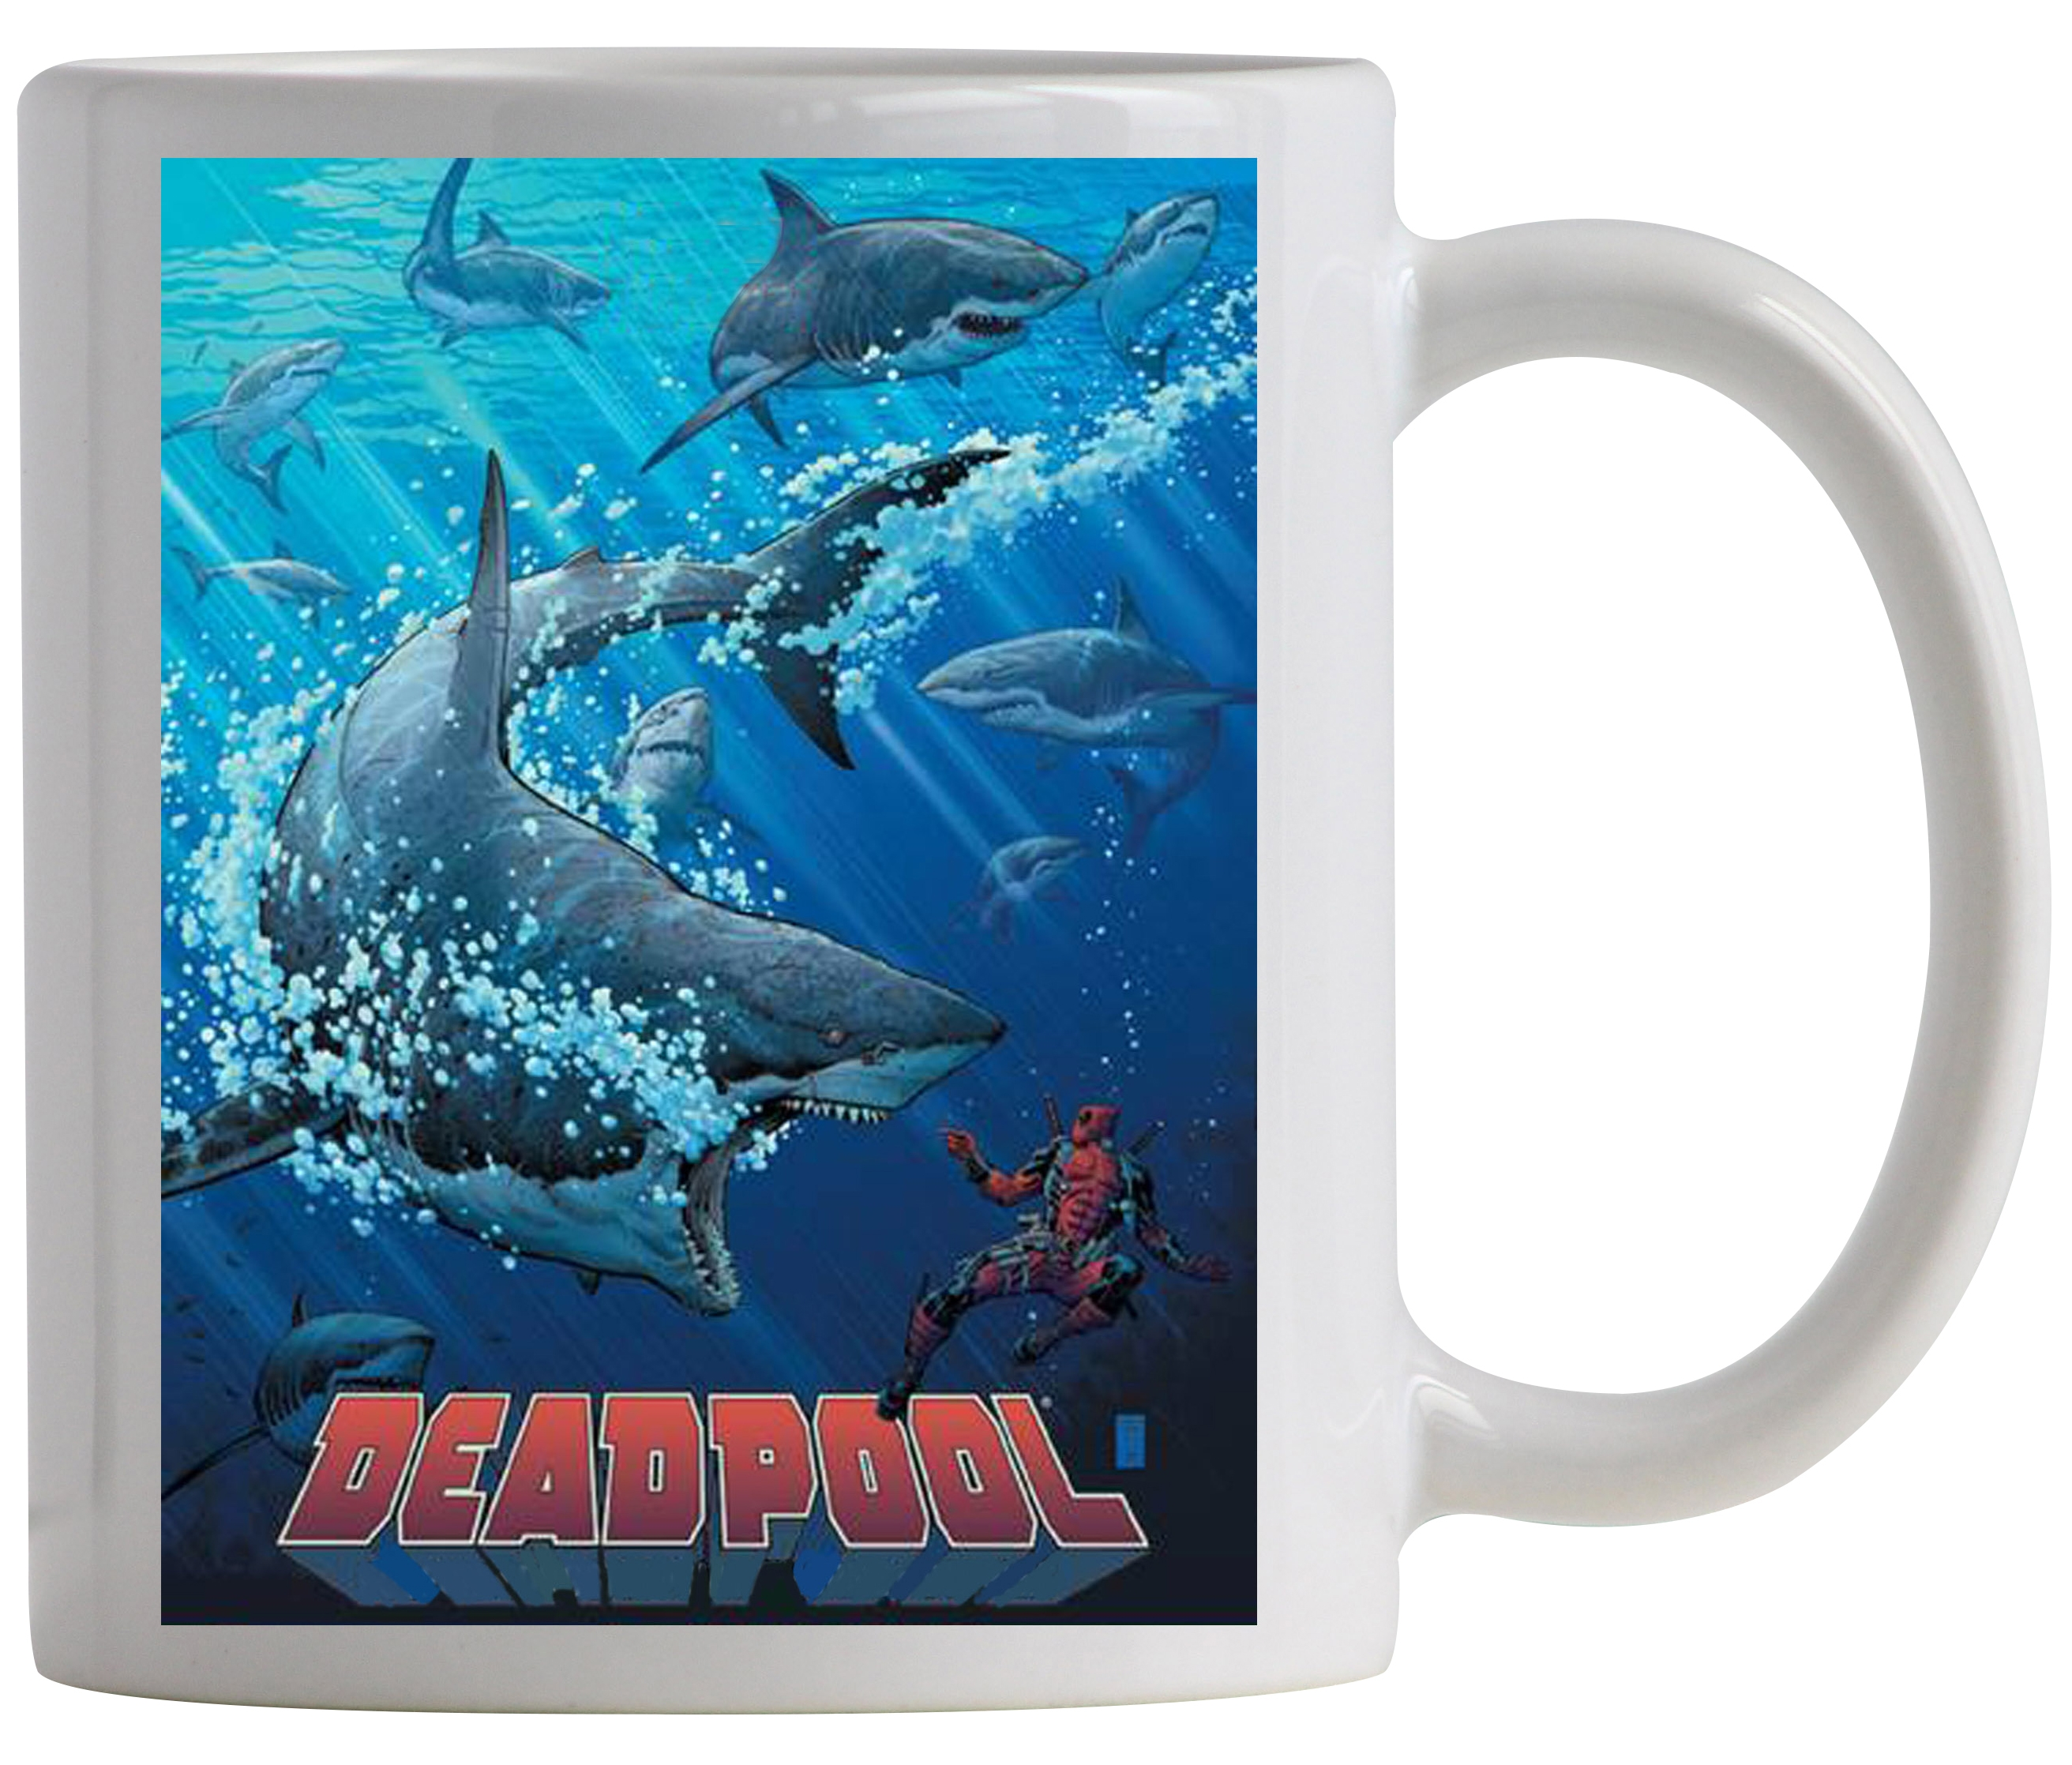 Deadpool- SHARK TANK PX COFFEE MUG (SALE)